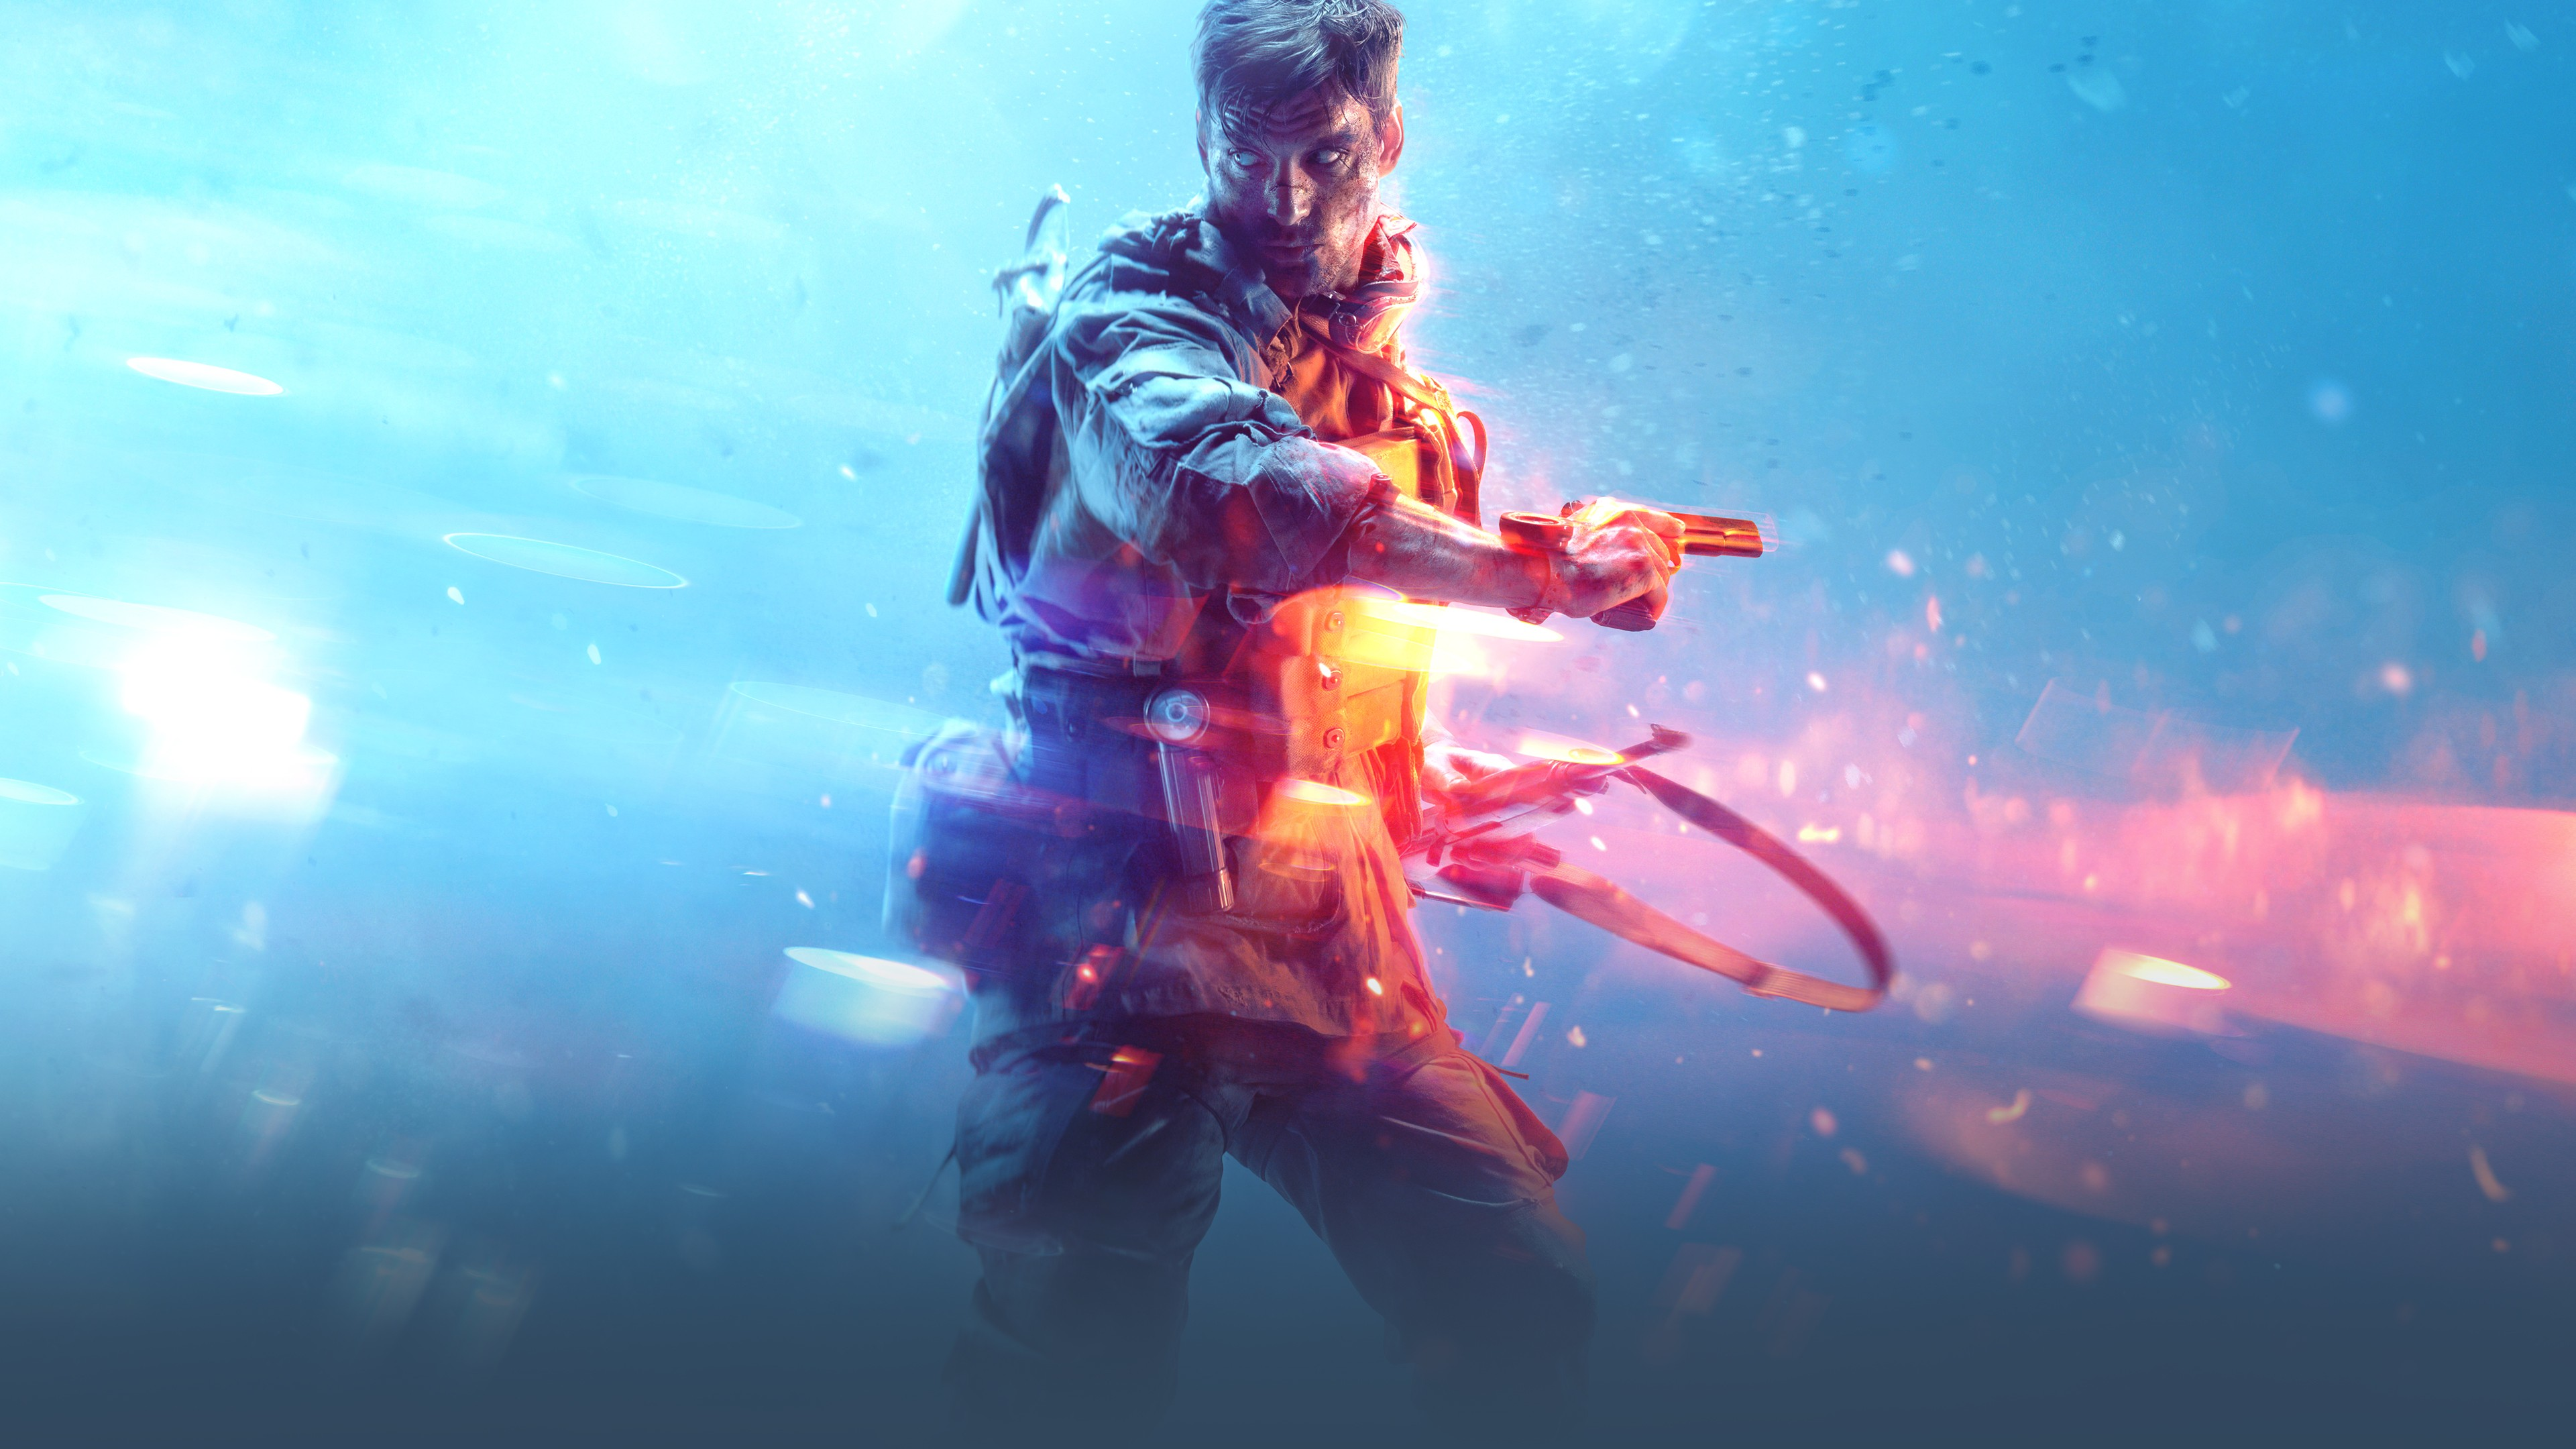 Battlefield 6: Facts, Rumors, and Leaks